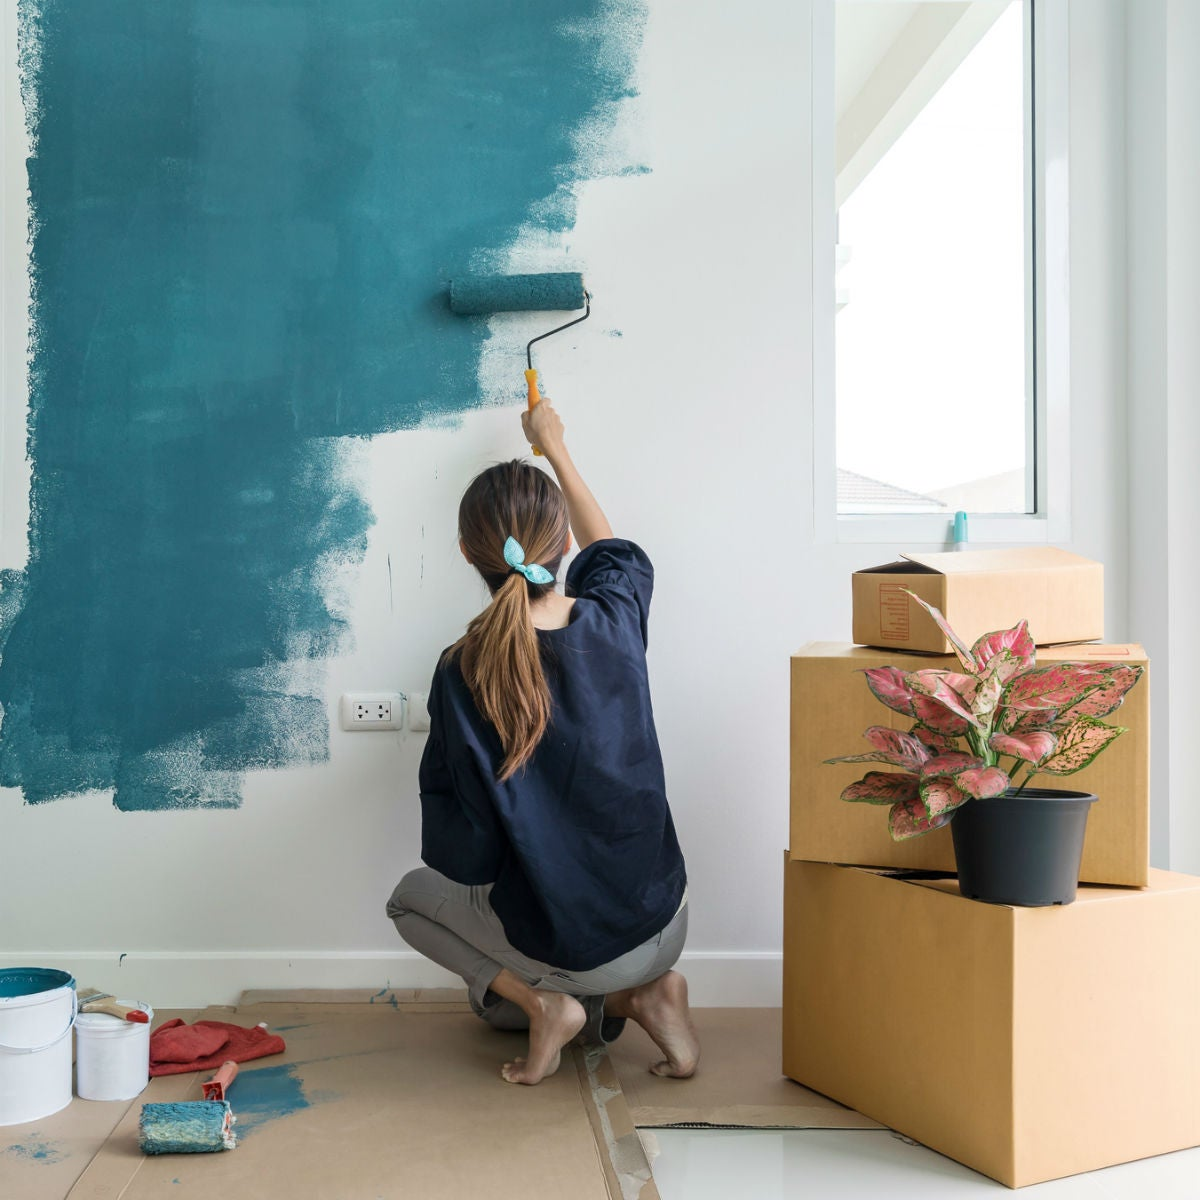 Why You'll Want an Air Filtration System When Painting a Room